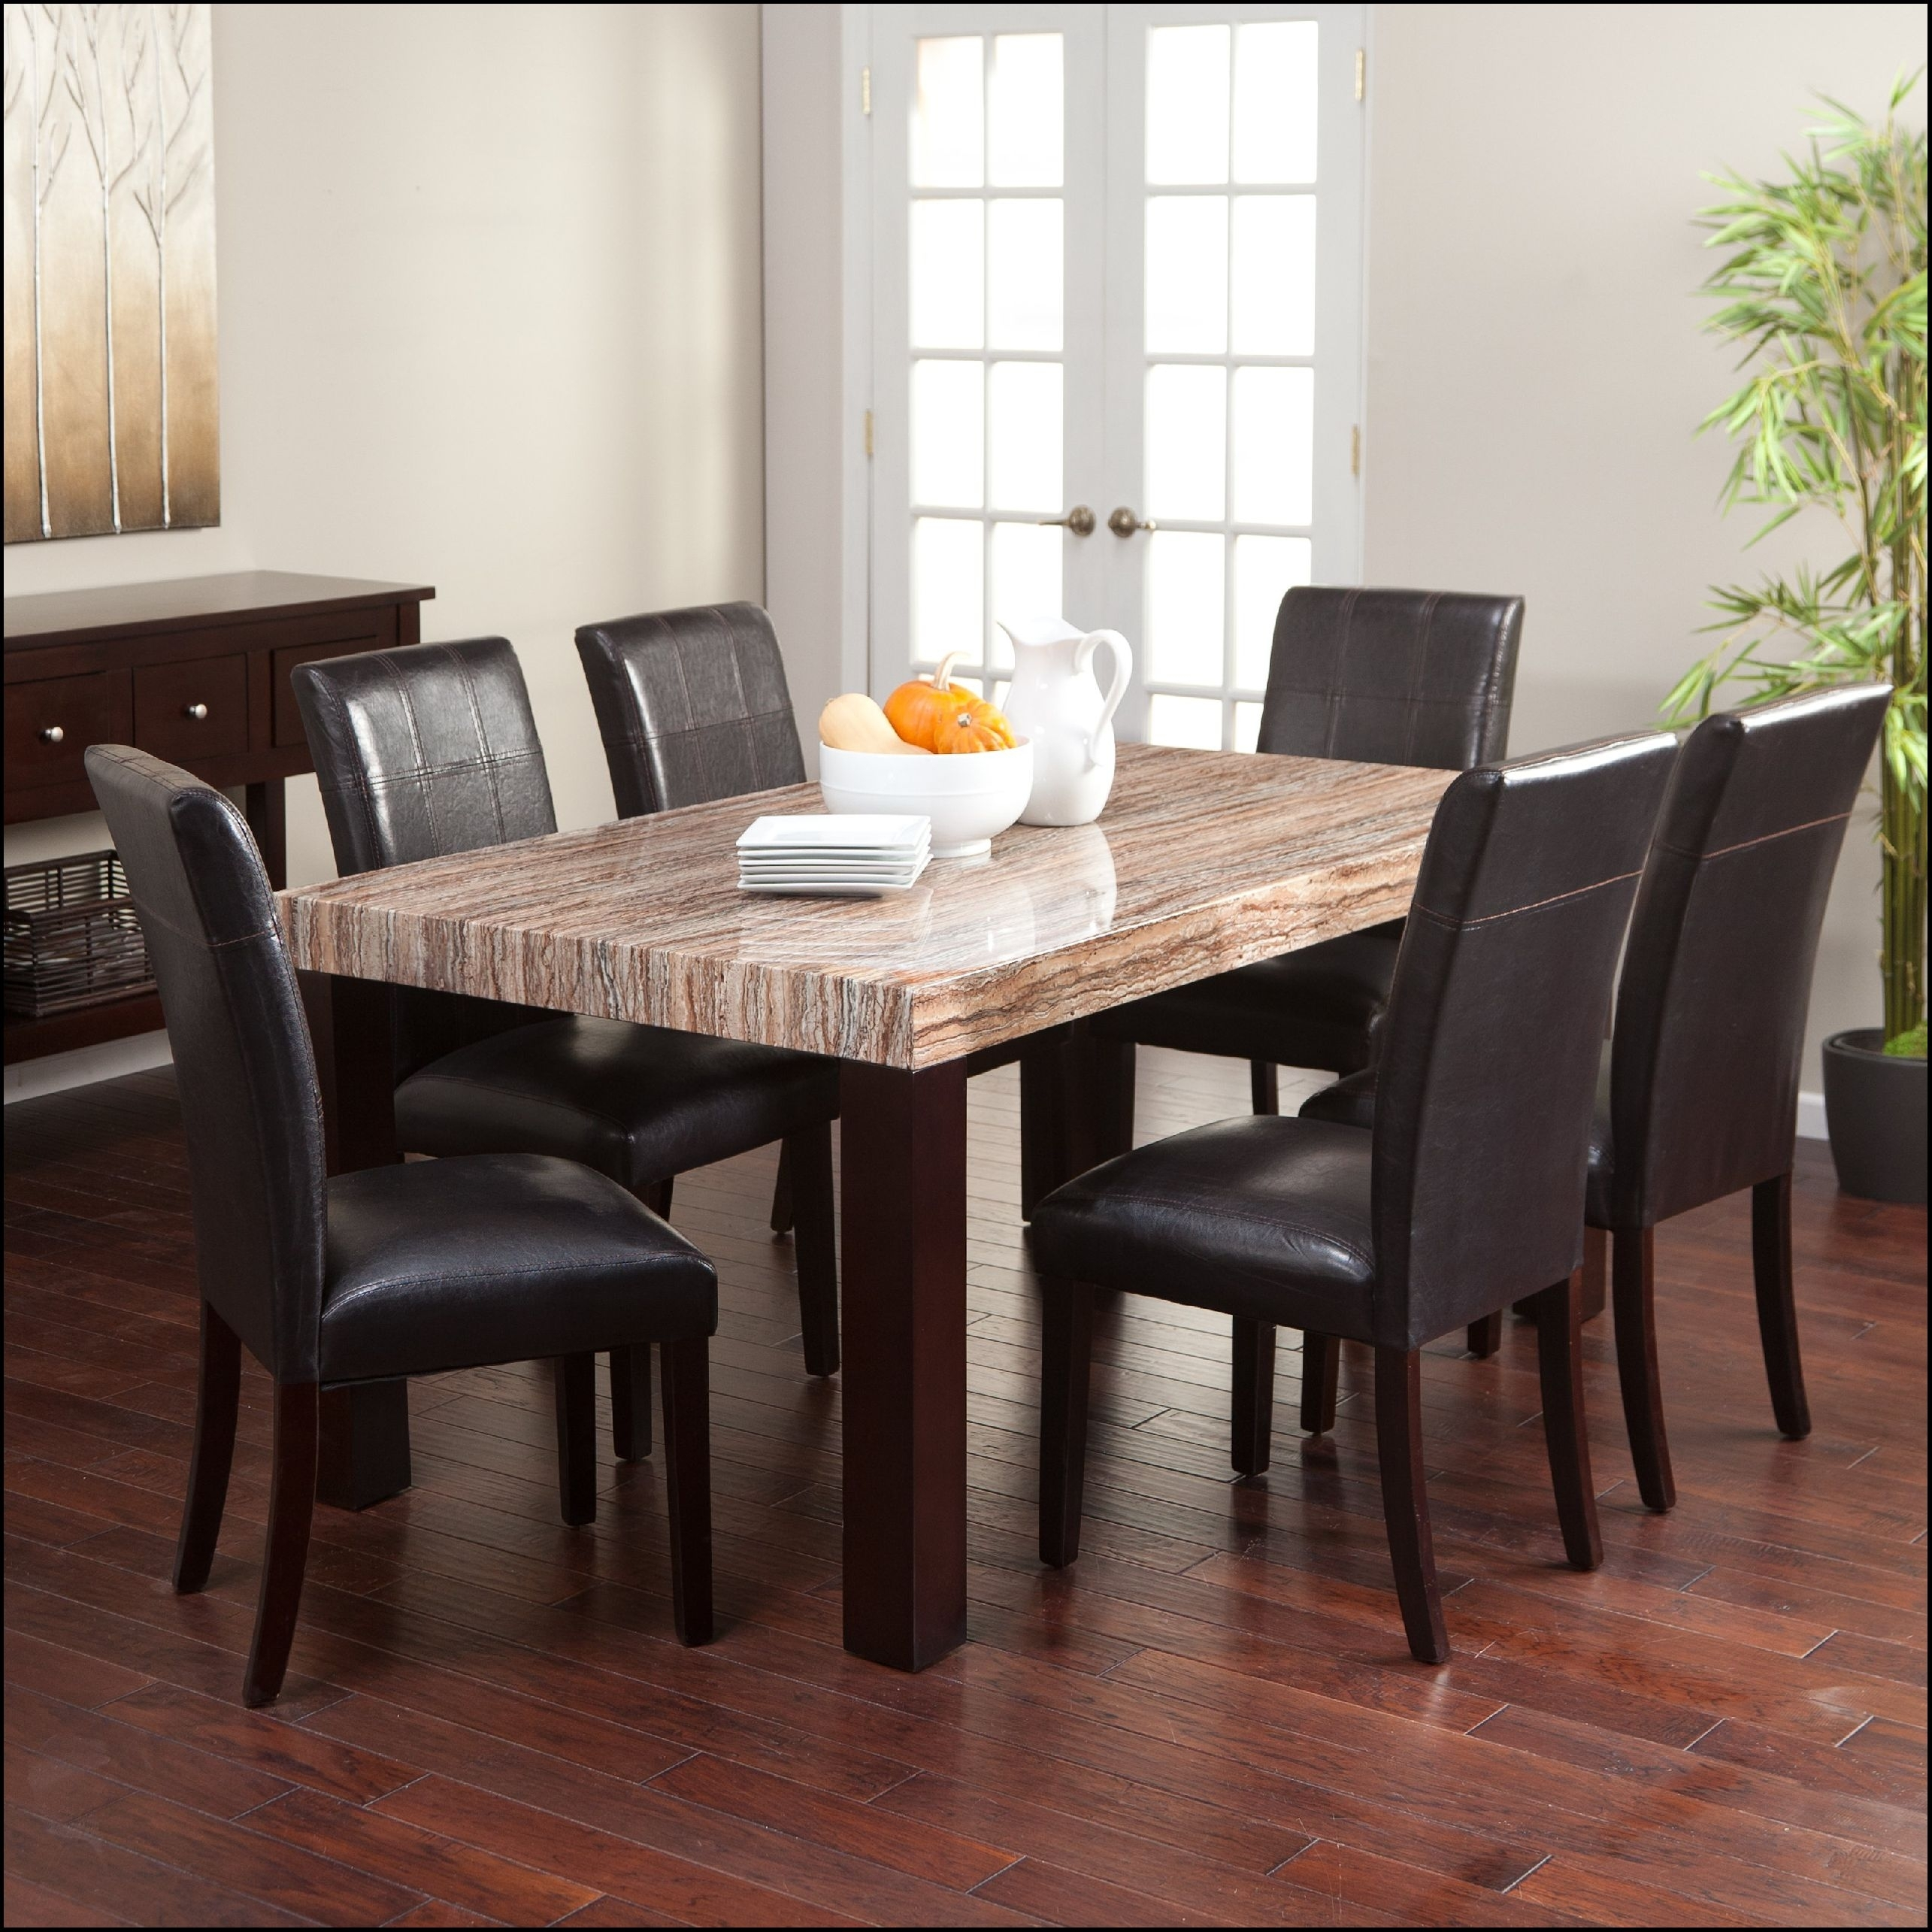 Great Finley Home Palazzo 6 Piece Dining Set With Bench With Looking For 2017 Palazzo Rectangle Dining Tables (Image 7 of 20)